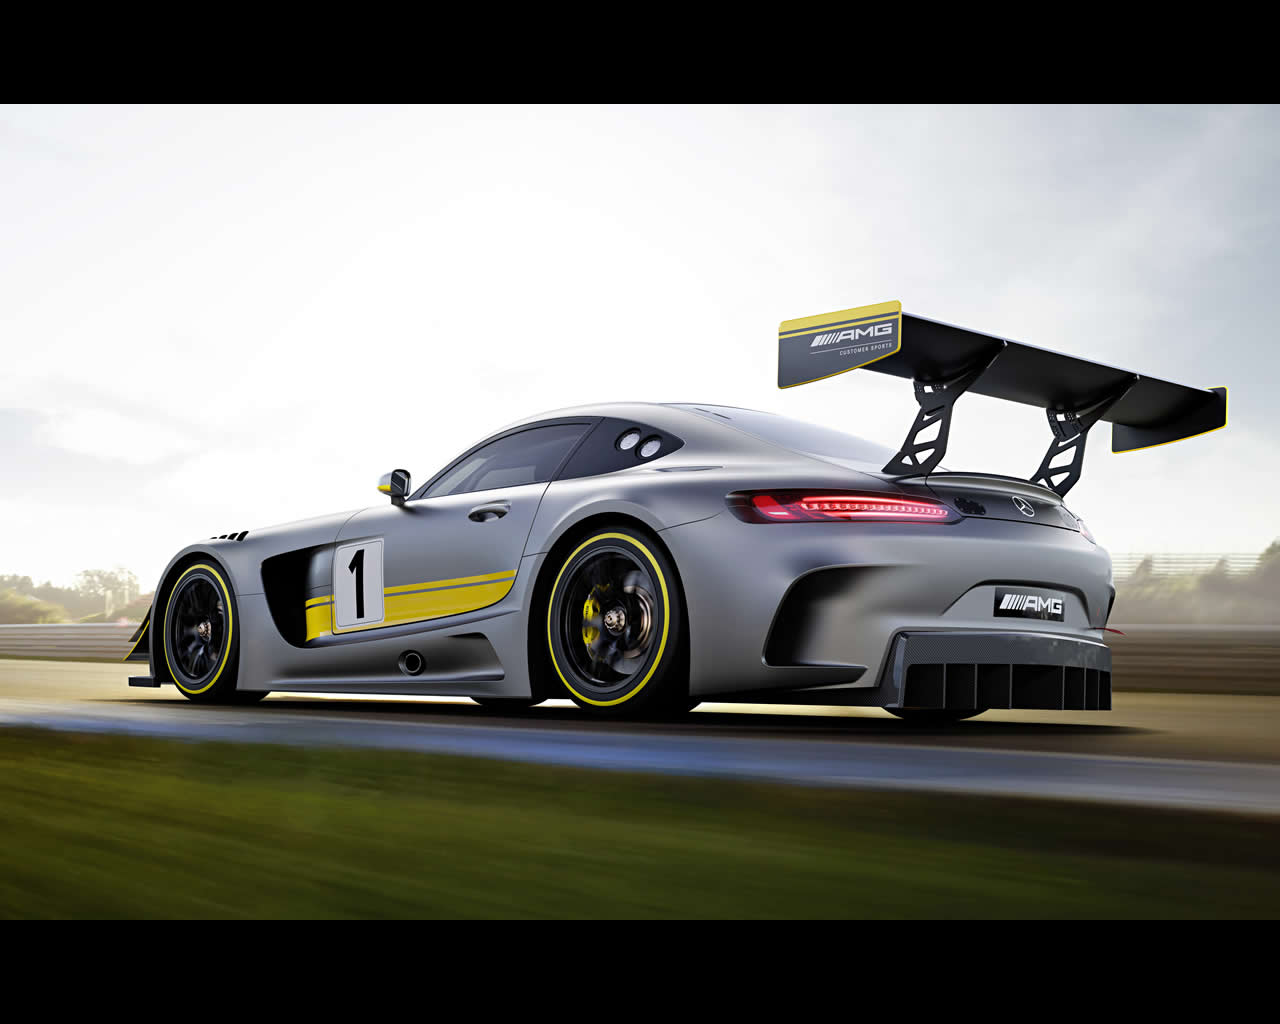 2011 mercedes benz sls amg gt3 3 wallpapers driverlayer. Black Bedroom Furniture Sets. Home Design Ideas